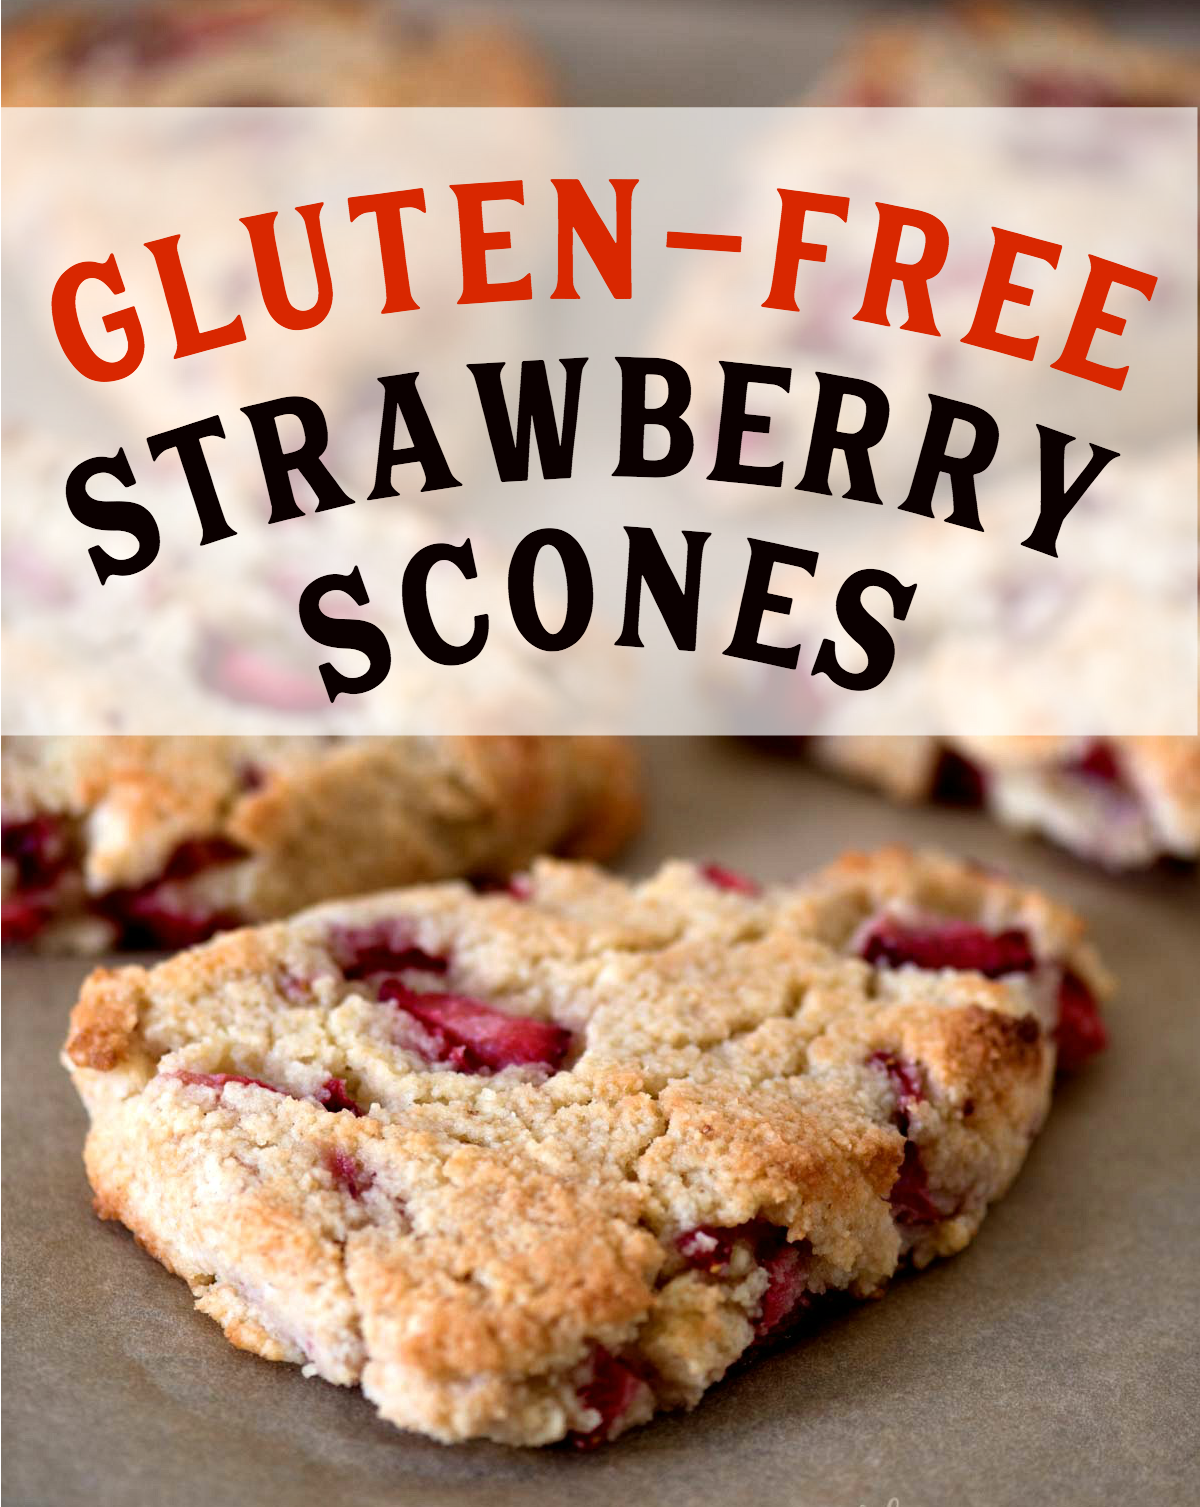 Delicious gluten-free strawberry scones.